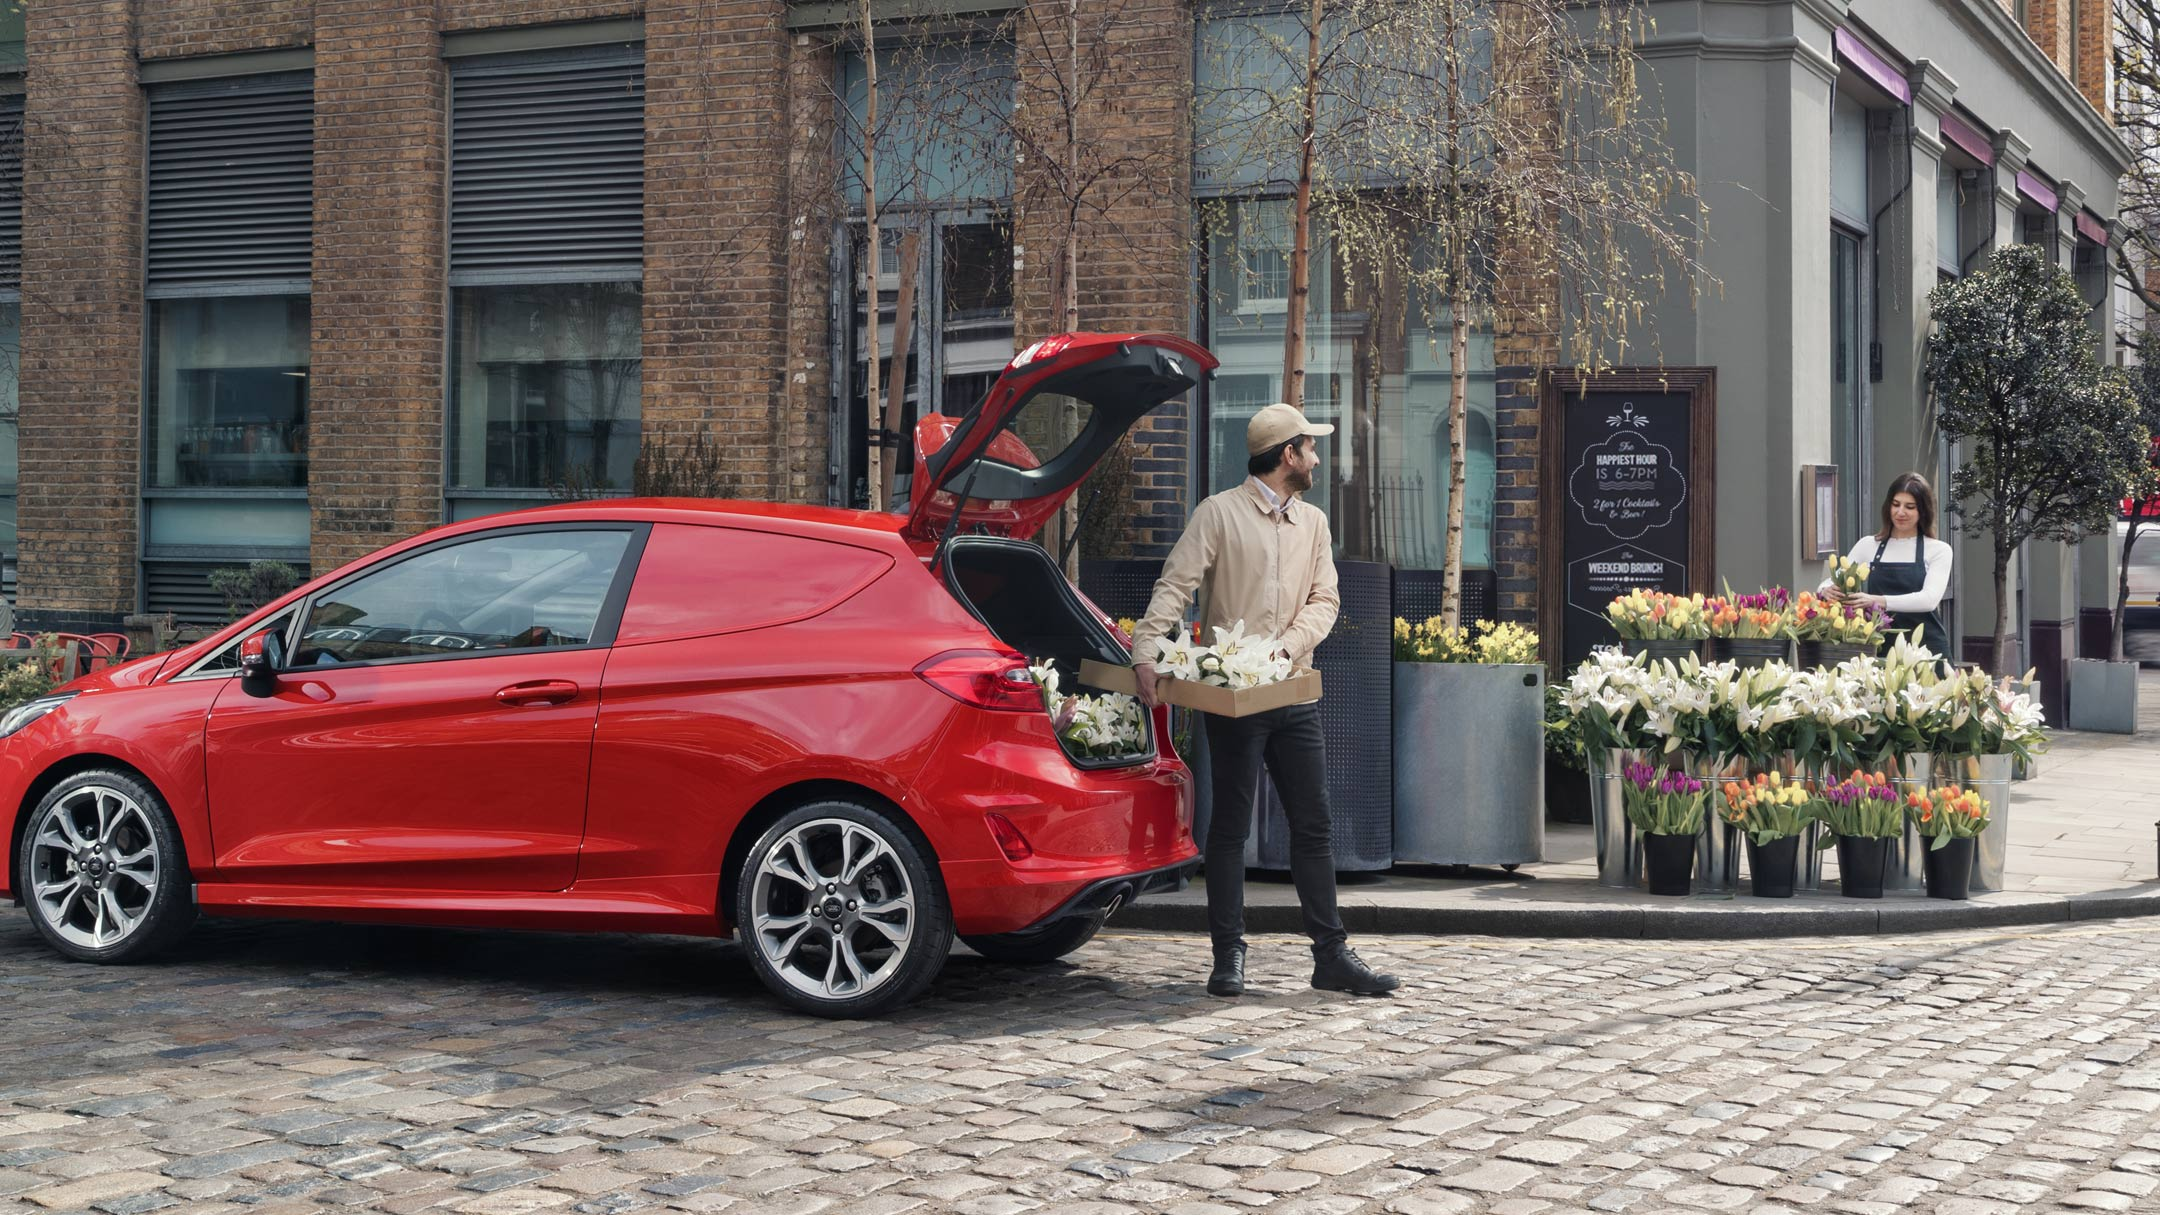 Ford Fiesta Van with man loading car